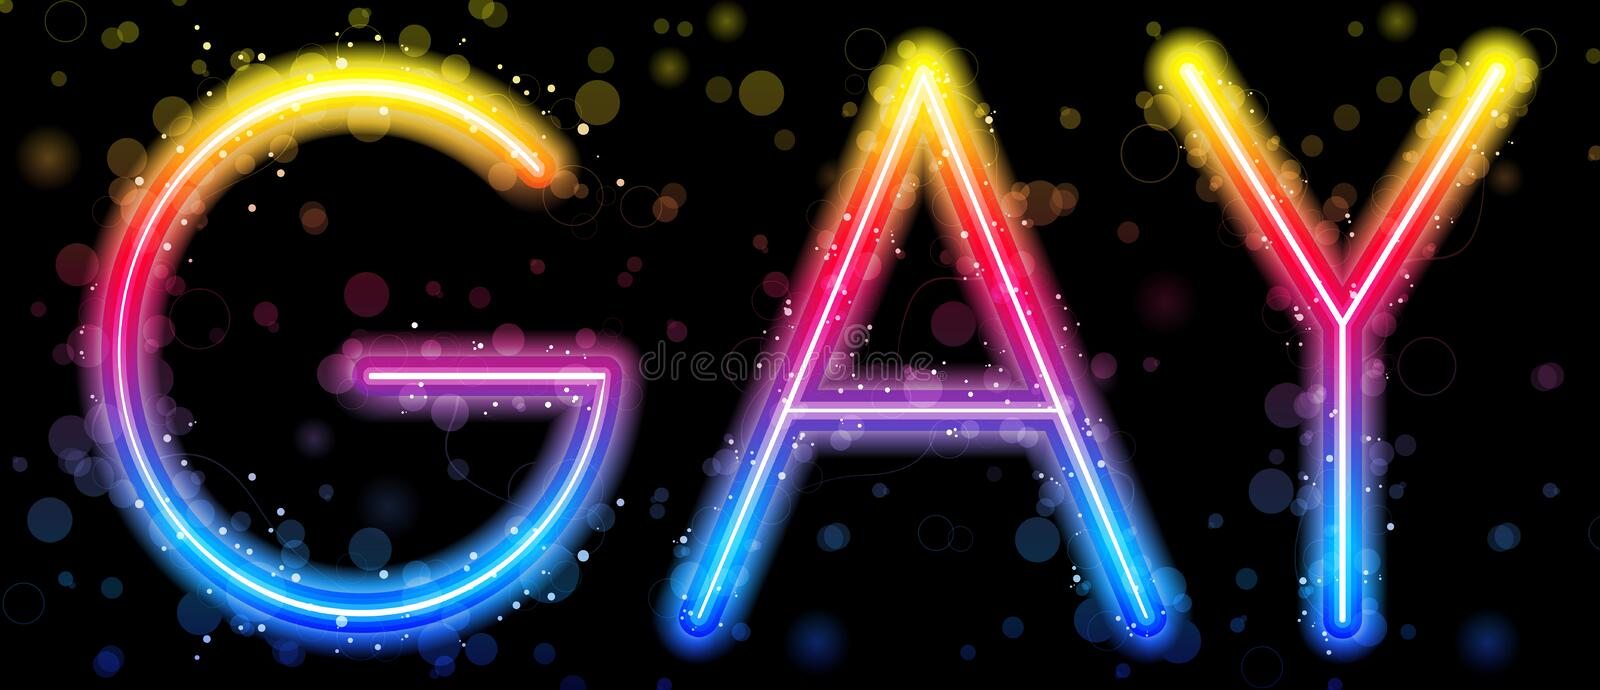 Gay Pride Abstract Colorful Stock Photo